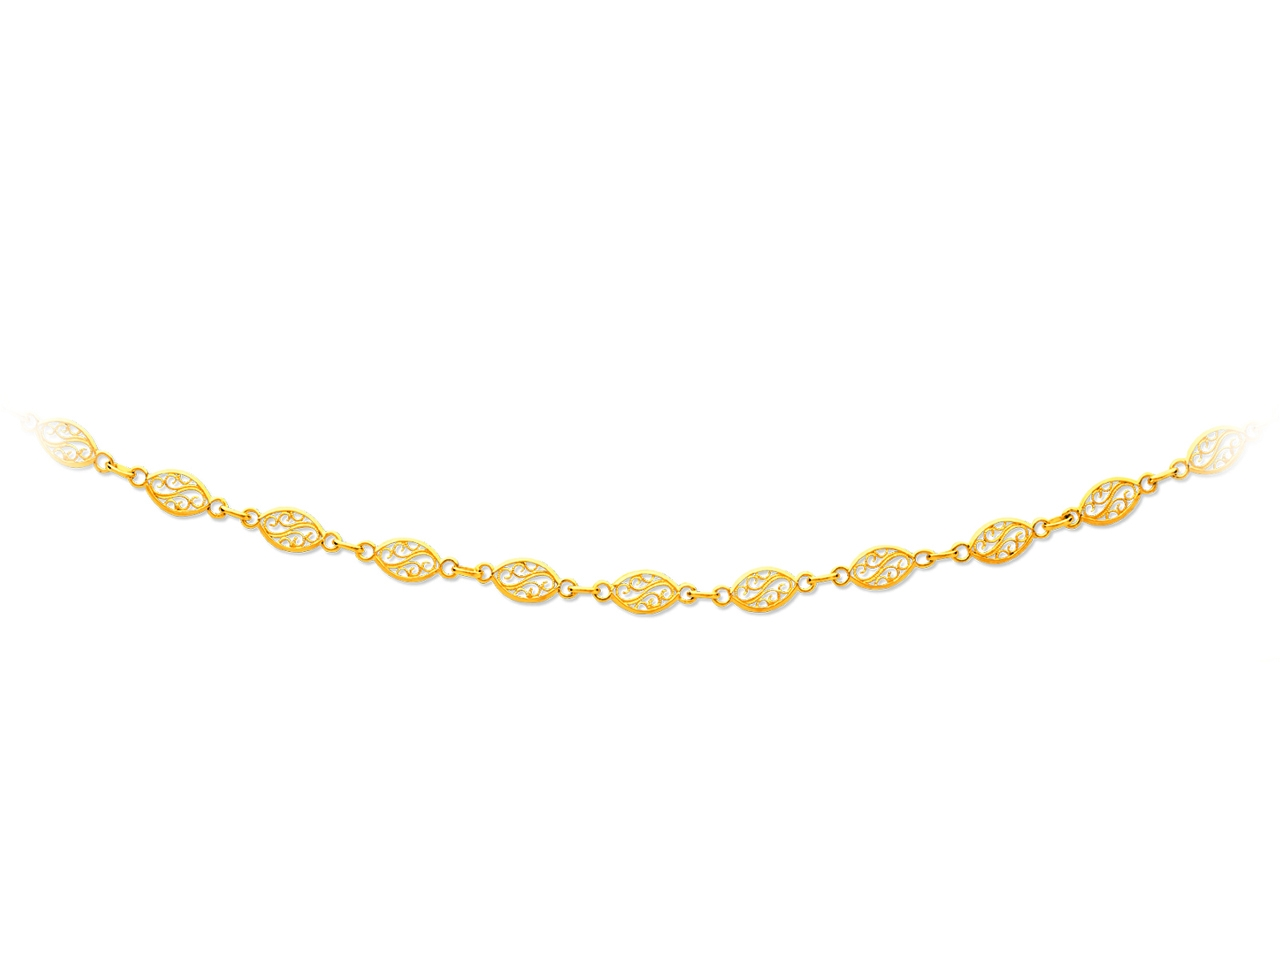 Collier maille filigrane, Or jaune 18k, 5,2 mm, 50 cm